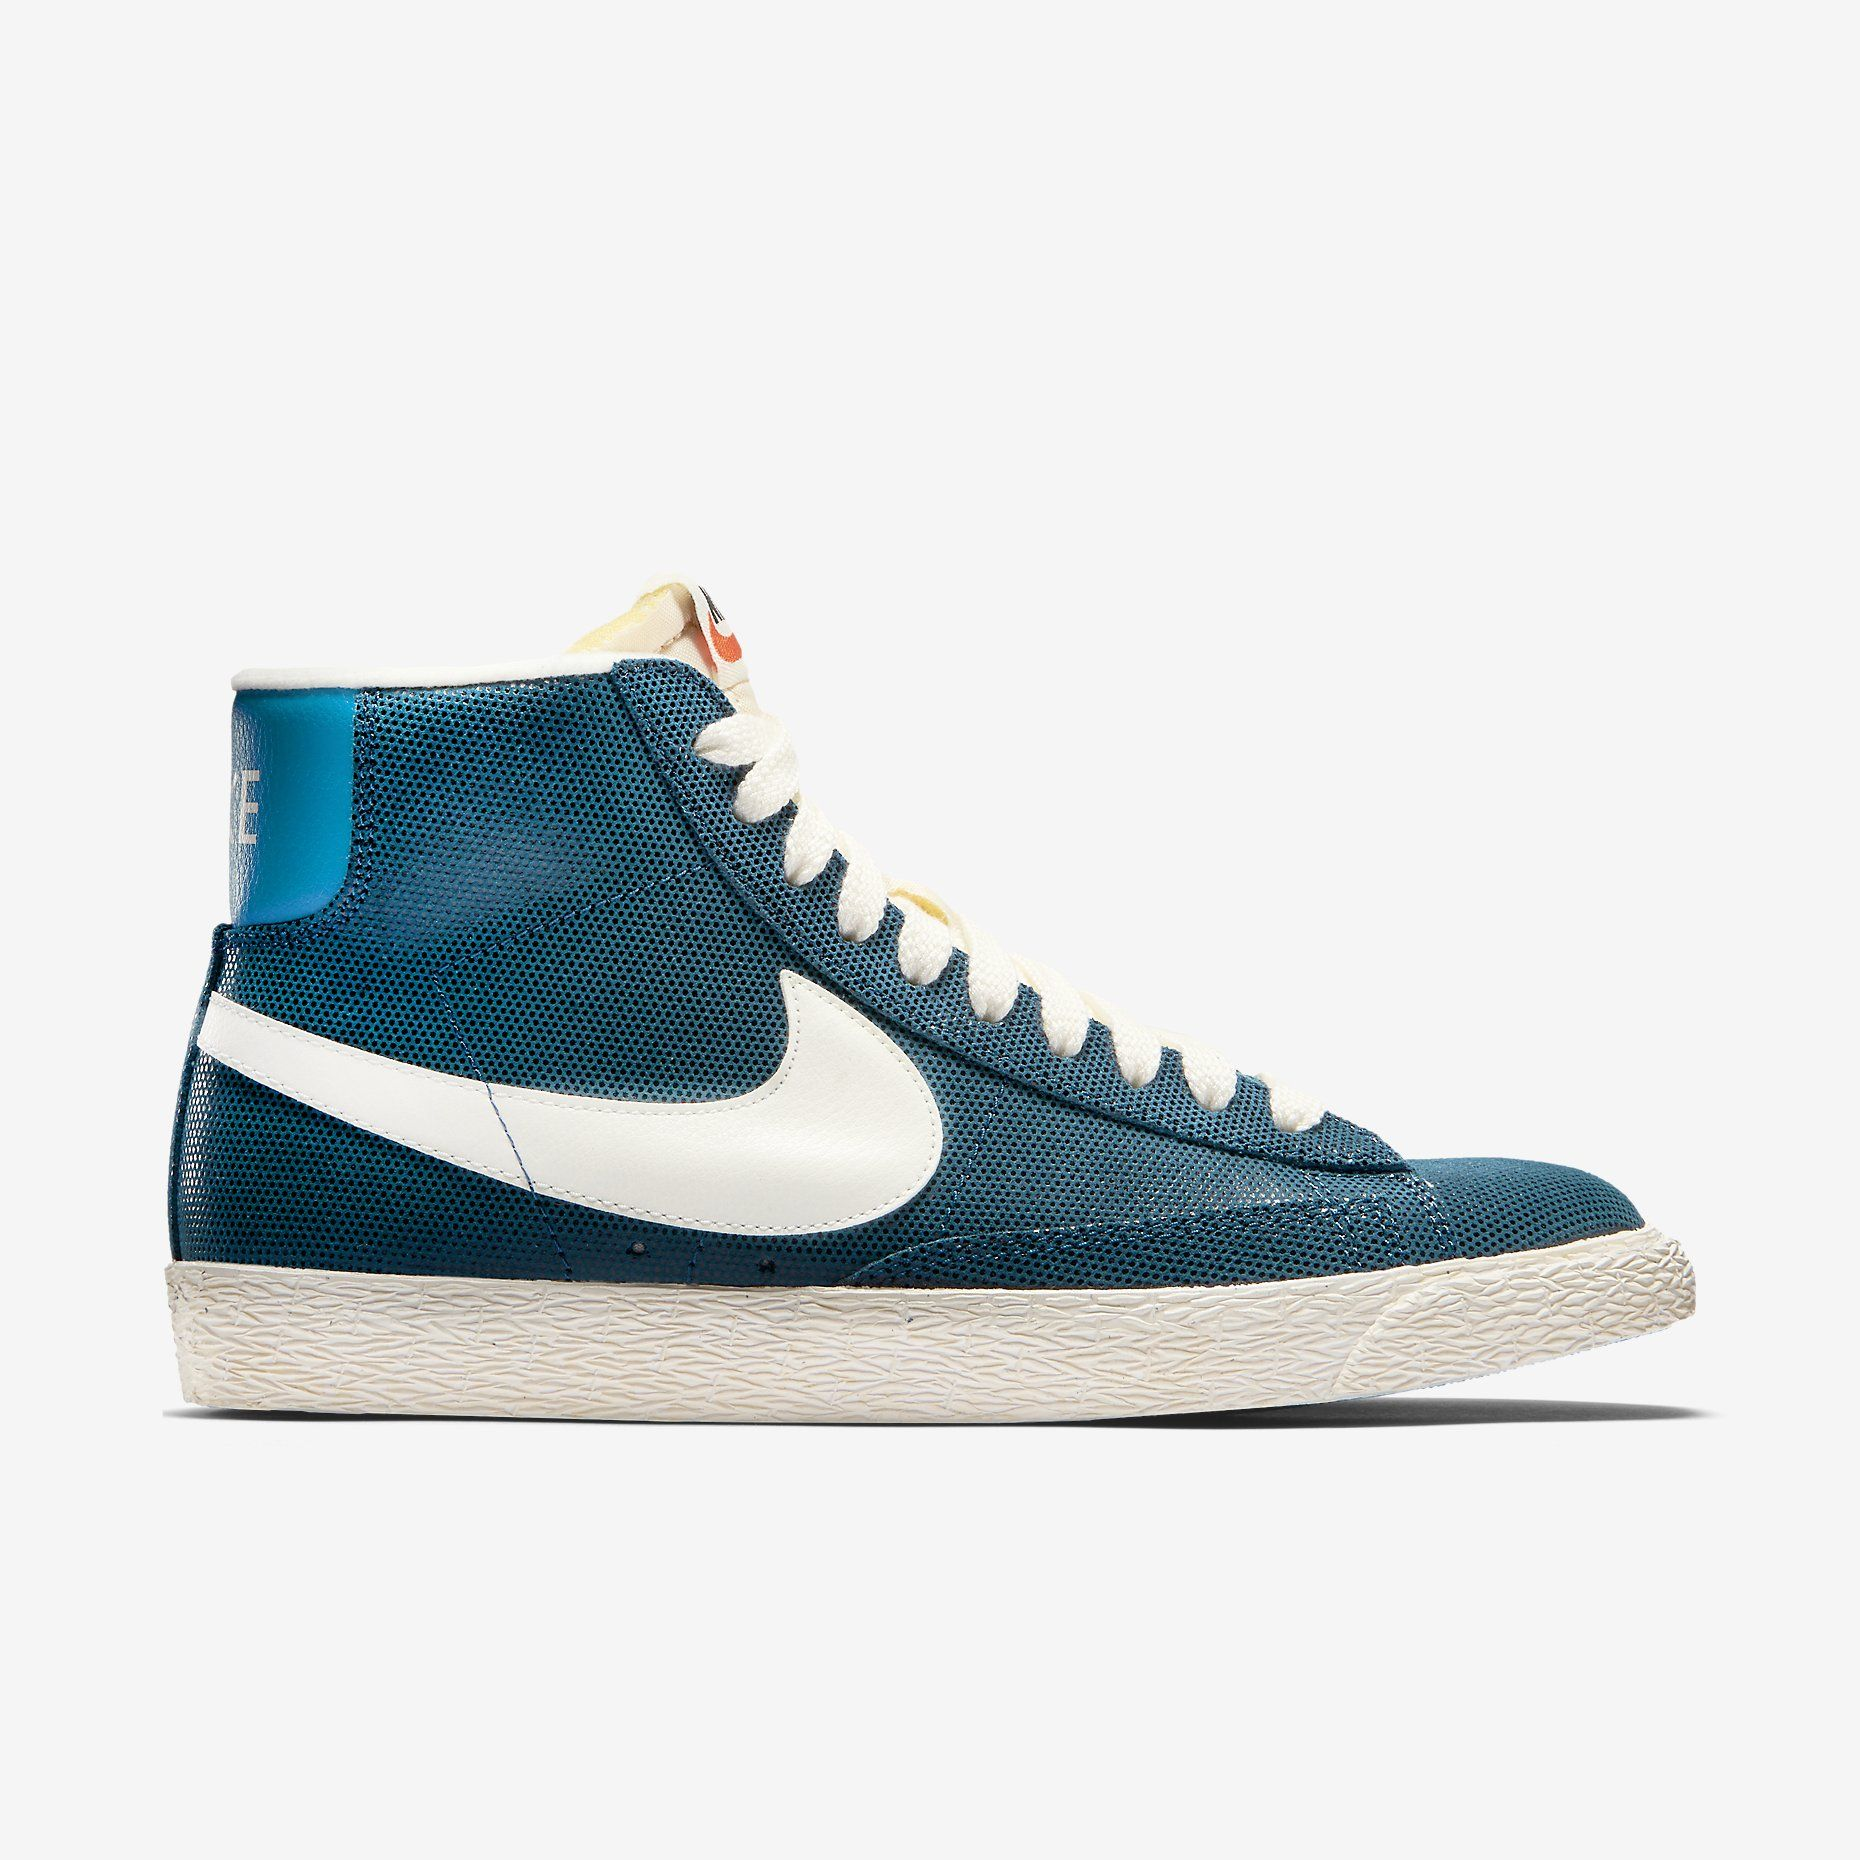 finest selection 0b958 a04be ... get nike blazer mid suede vintage womens shoe 100 59.97 15 style 518171  8b9ca d852b